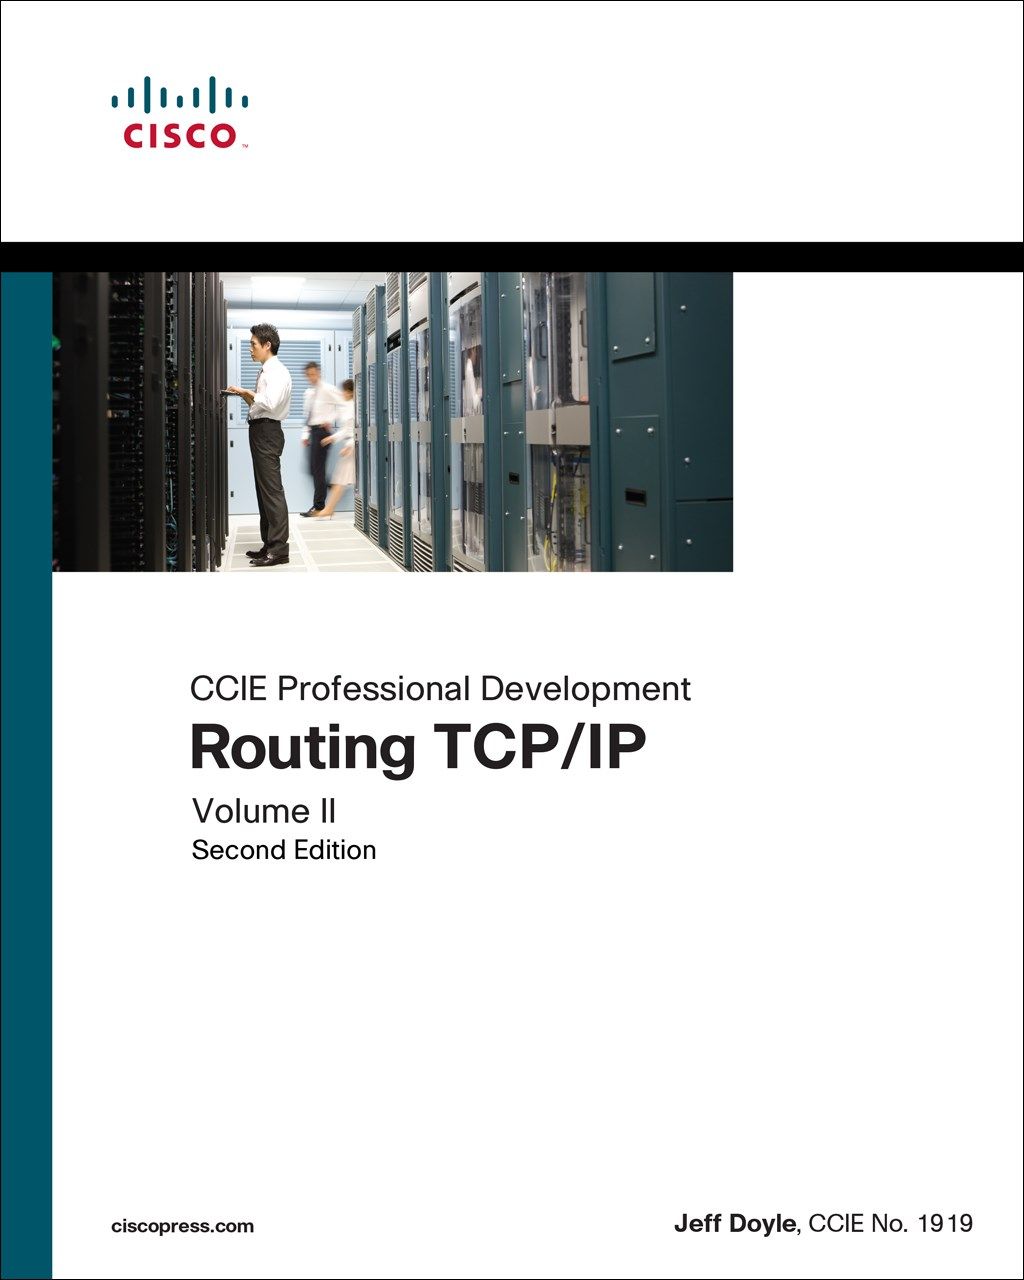 Routing TCP/IP, Volume II: CCIE Professional Development, 2nd Edition